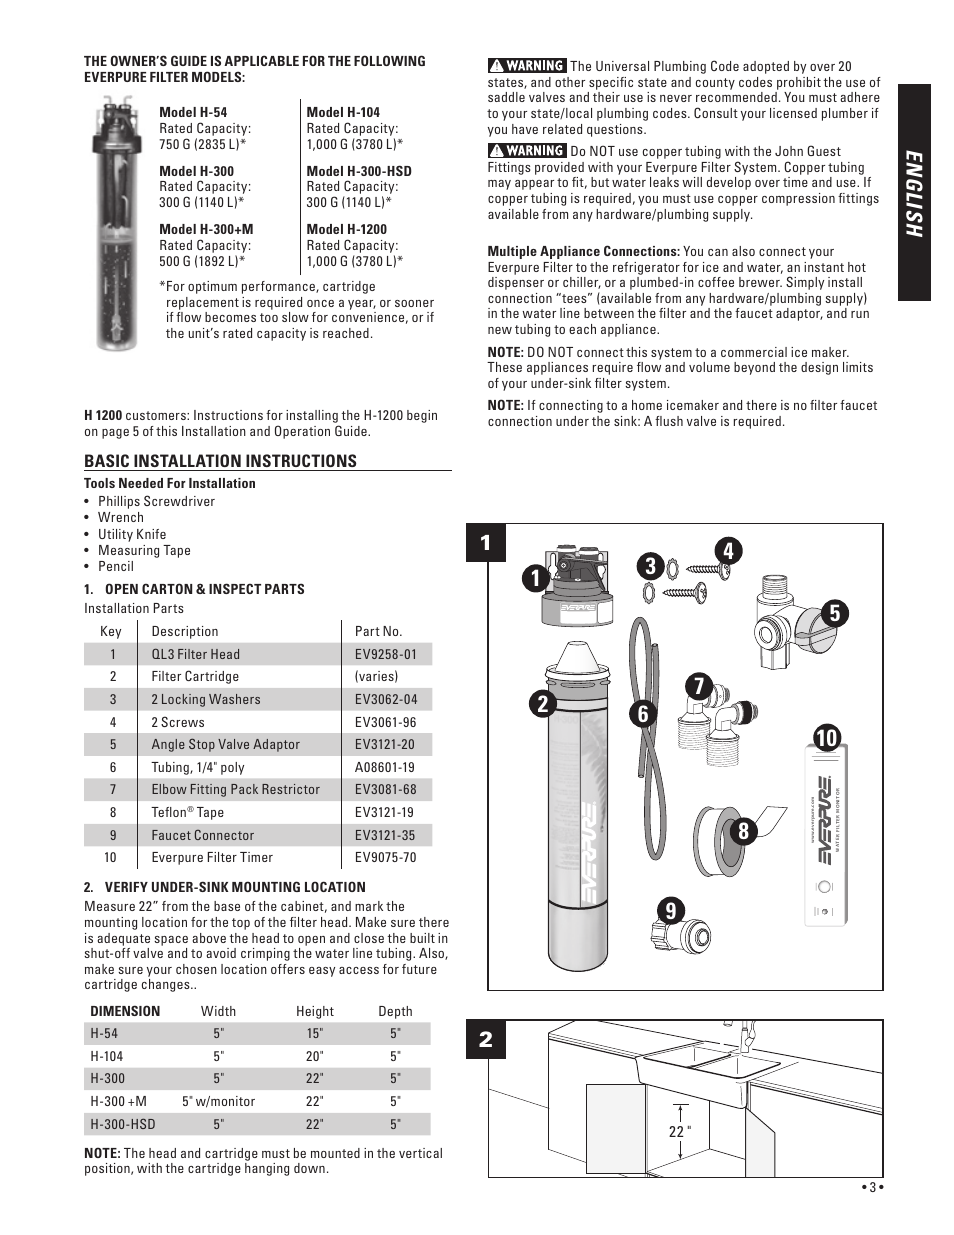 How To Install H Manual Guide